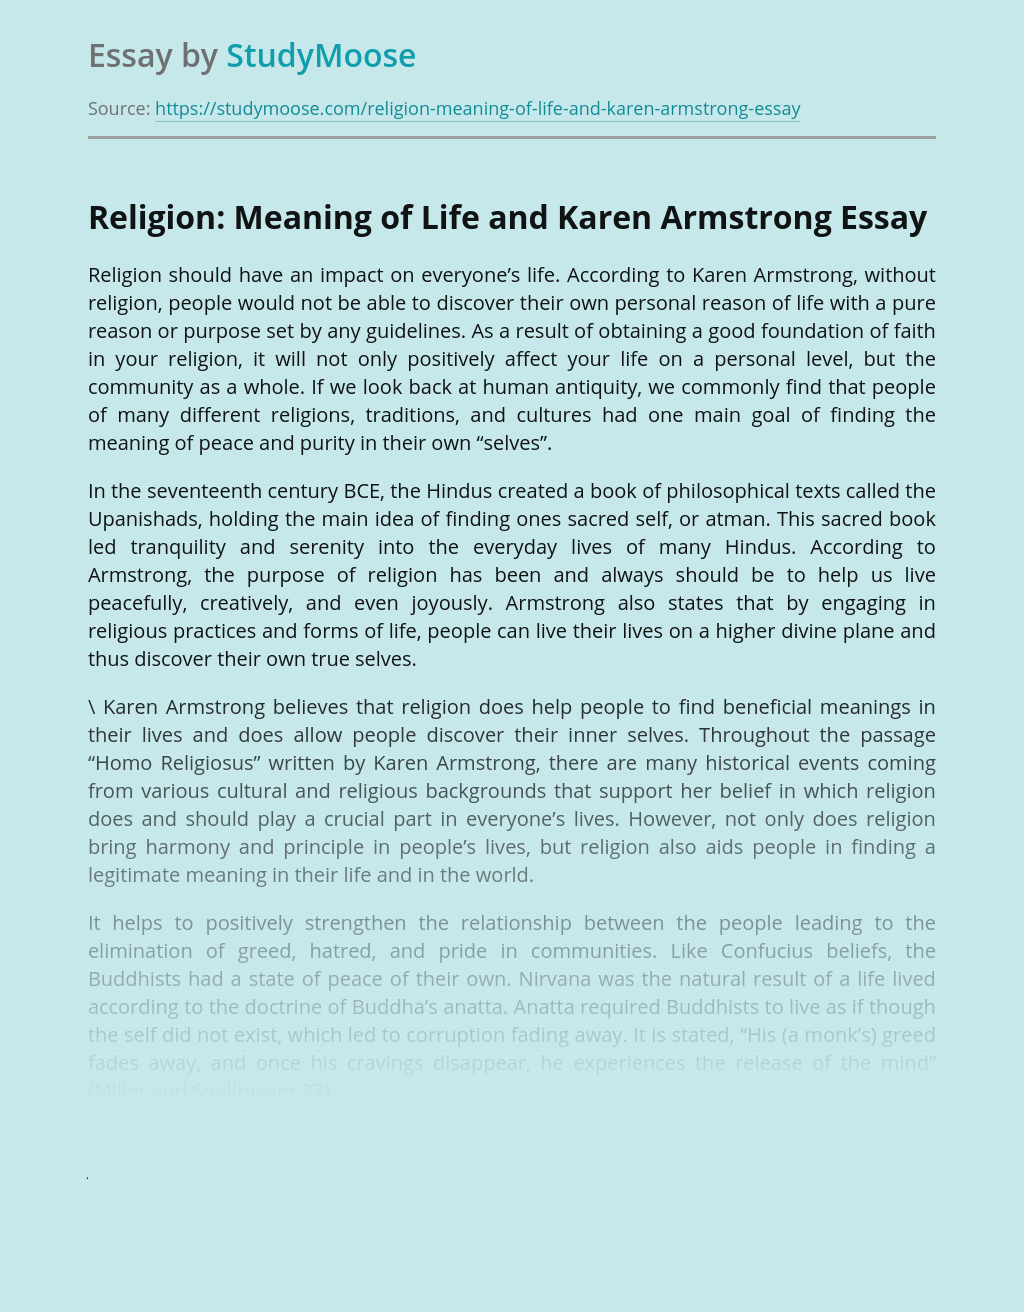 Religion: Meaning of Life and Karen Armstrong